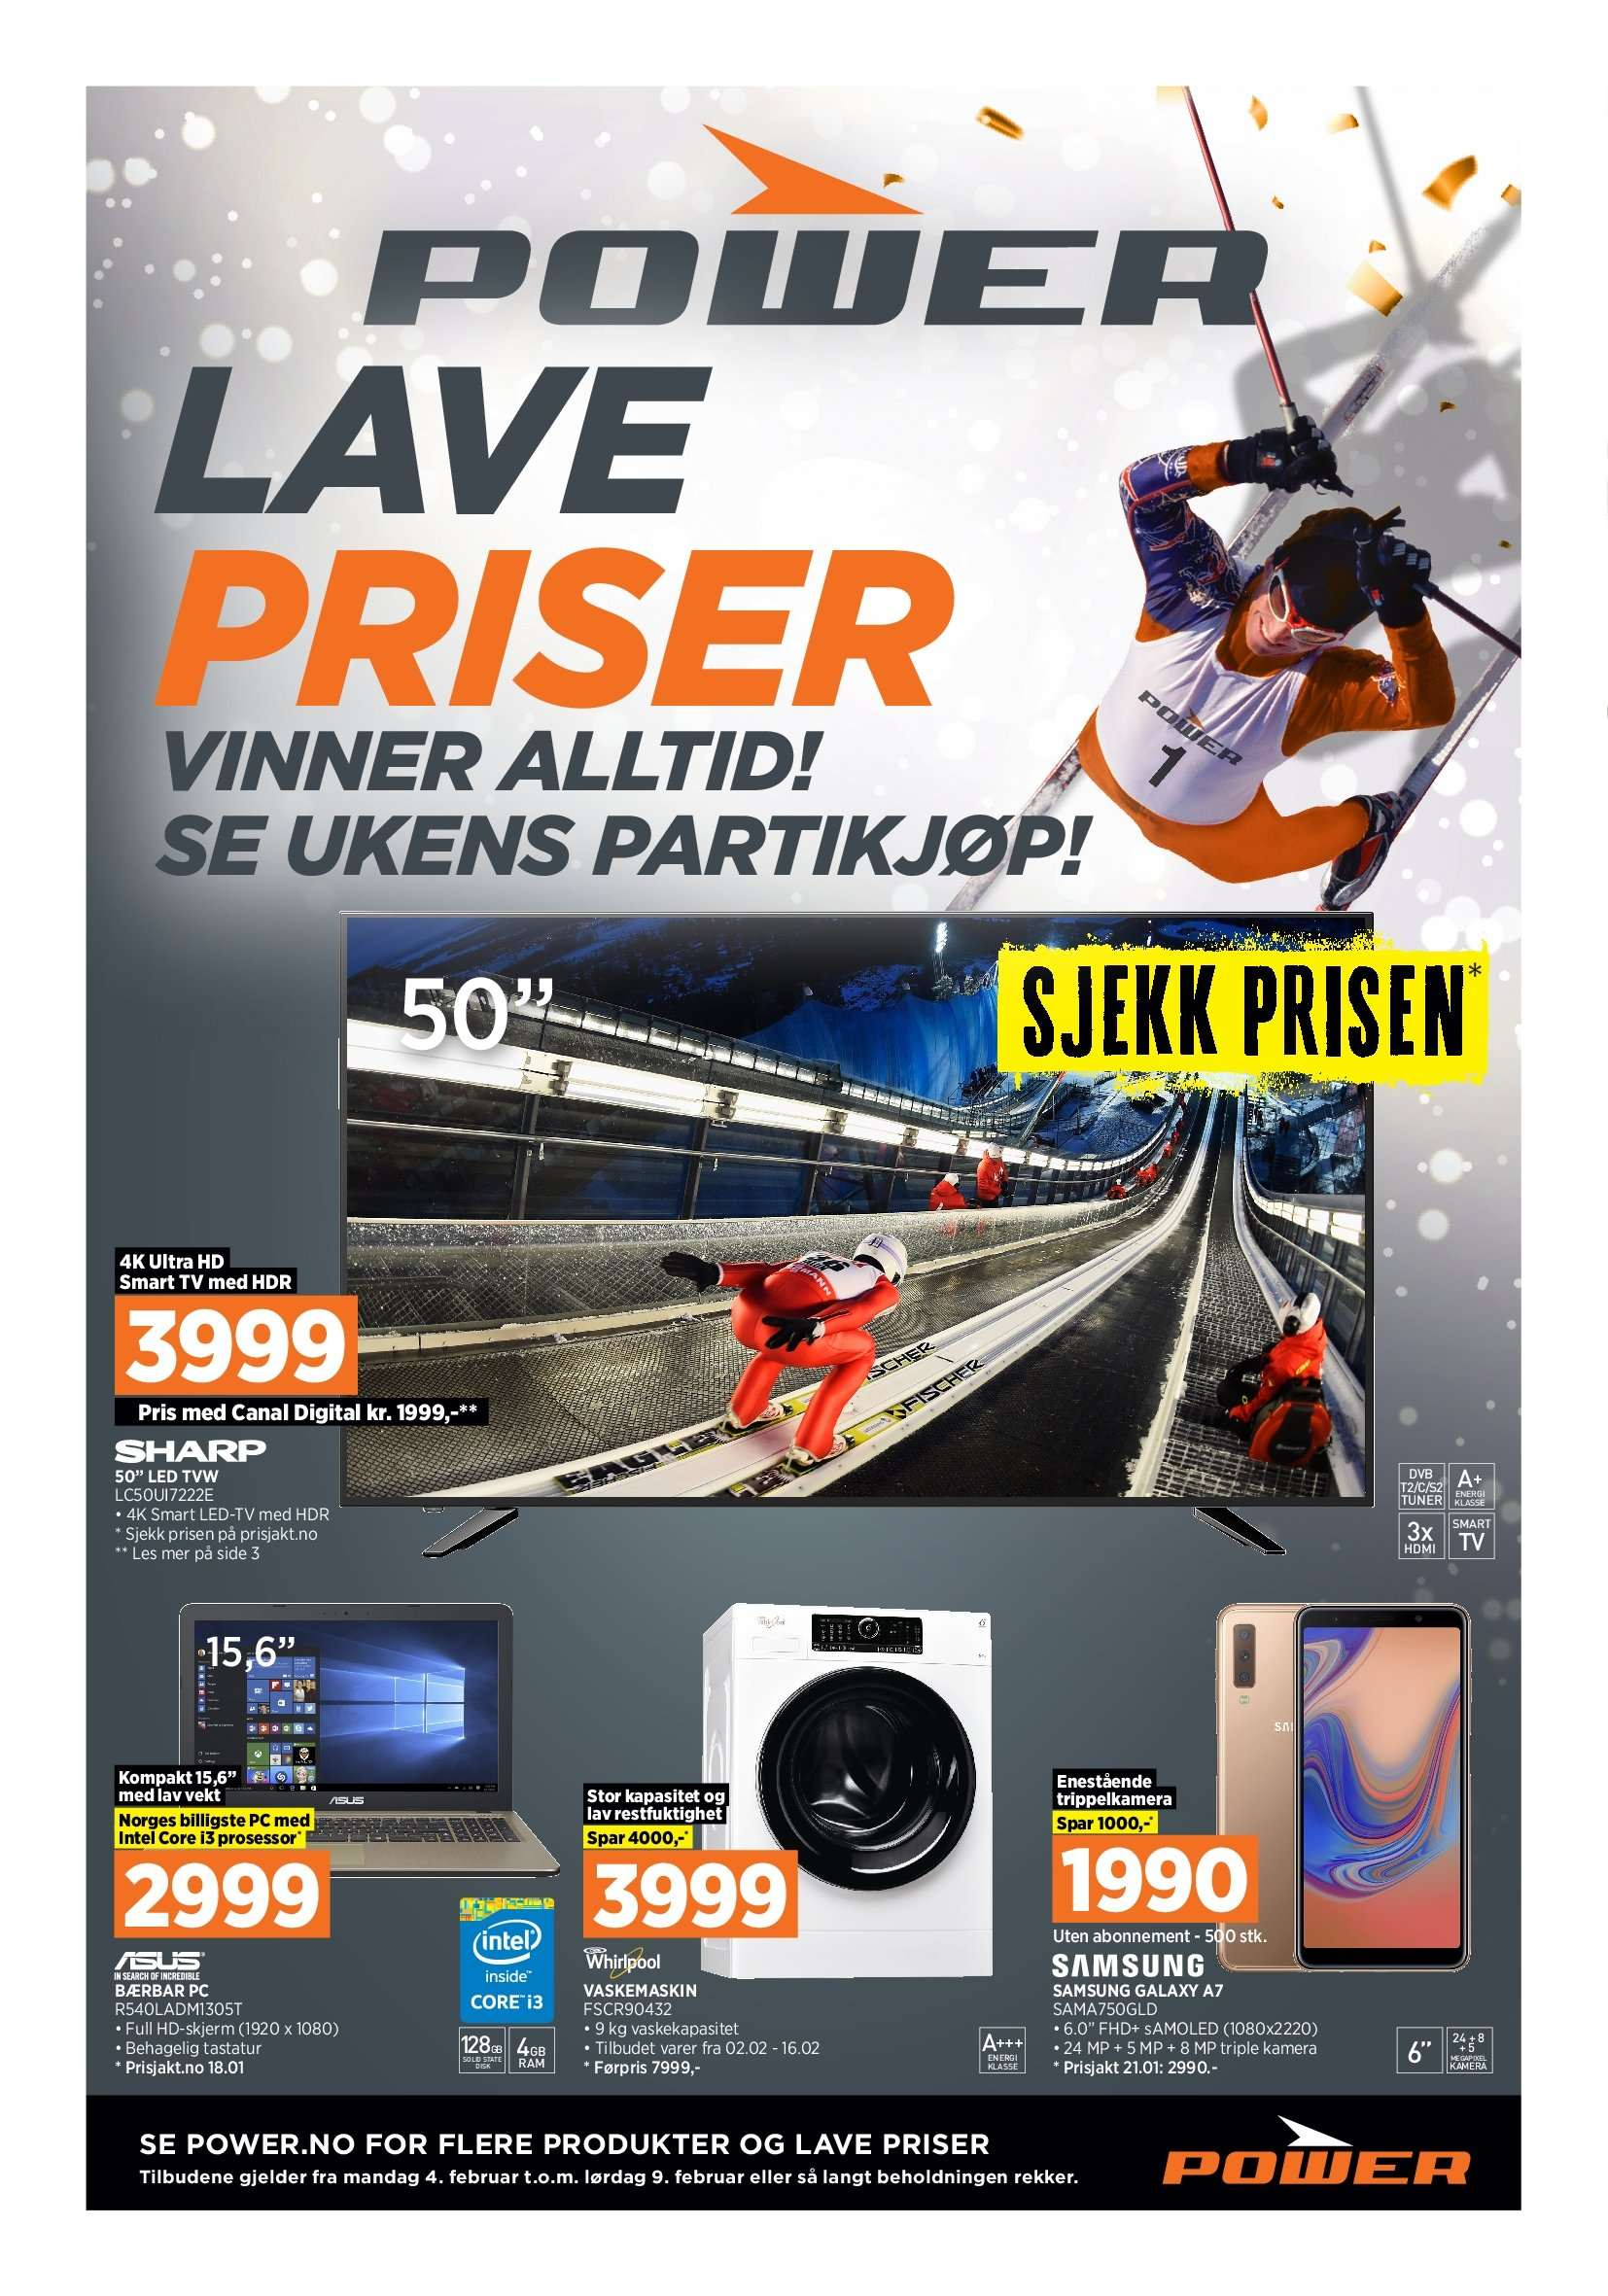 Kundeavis Power - 04.02.2019 - 09.02.2019. Side 1.